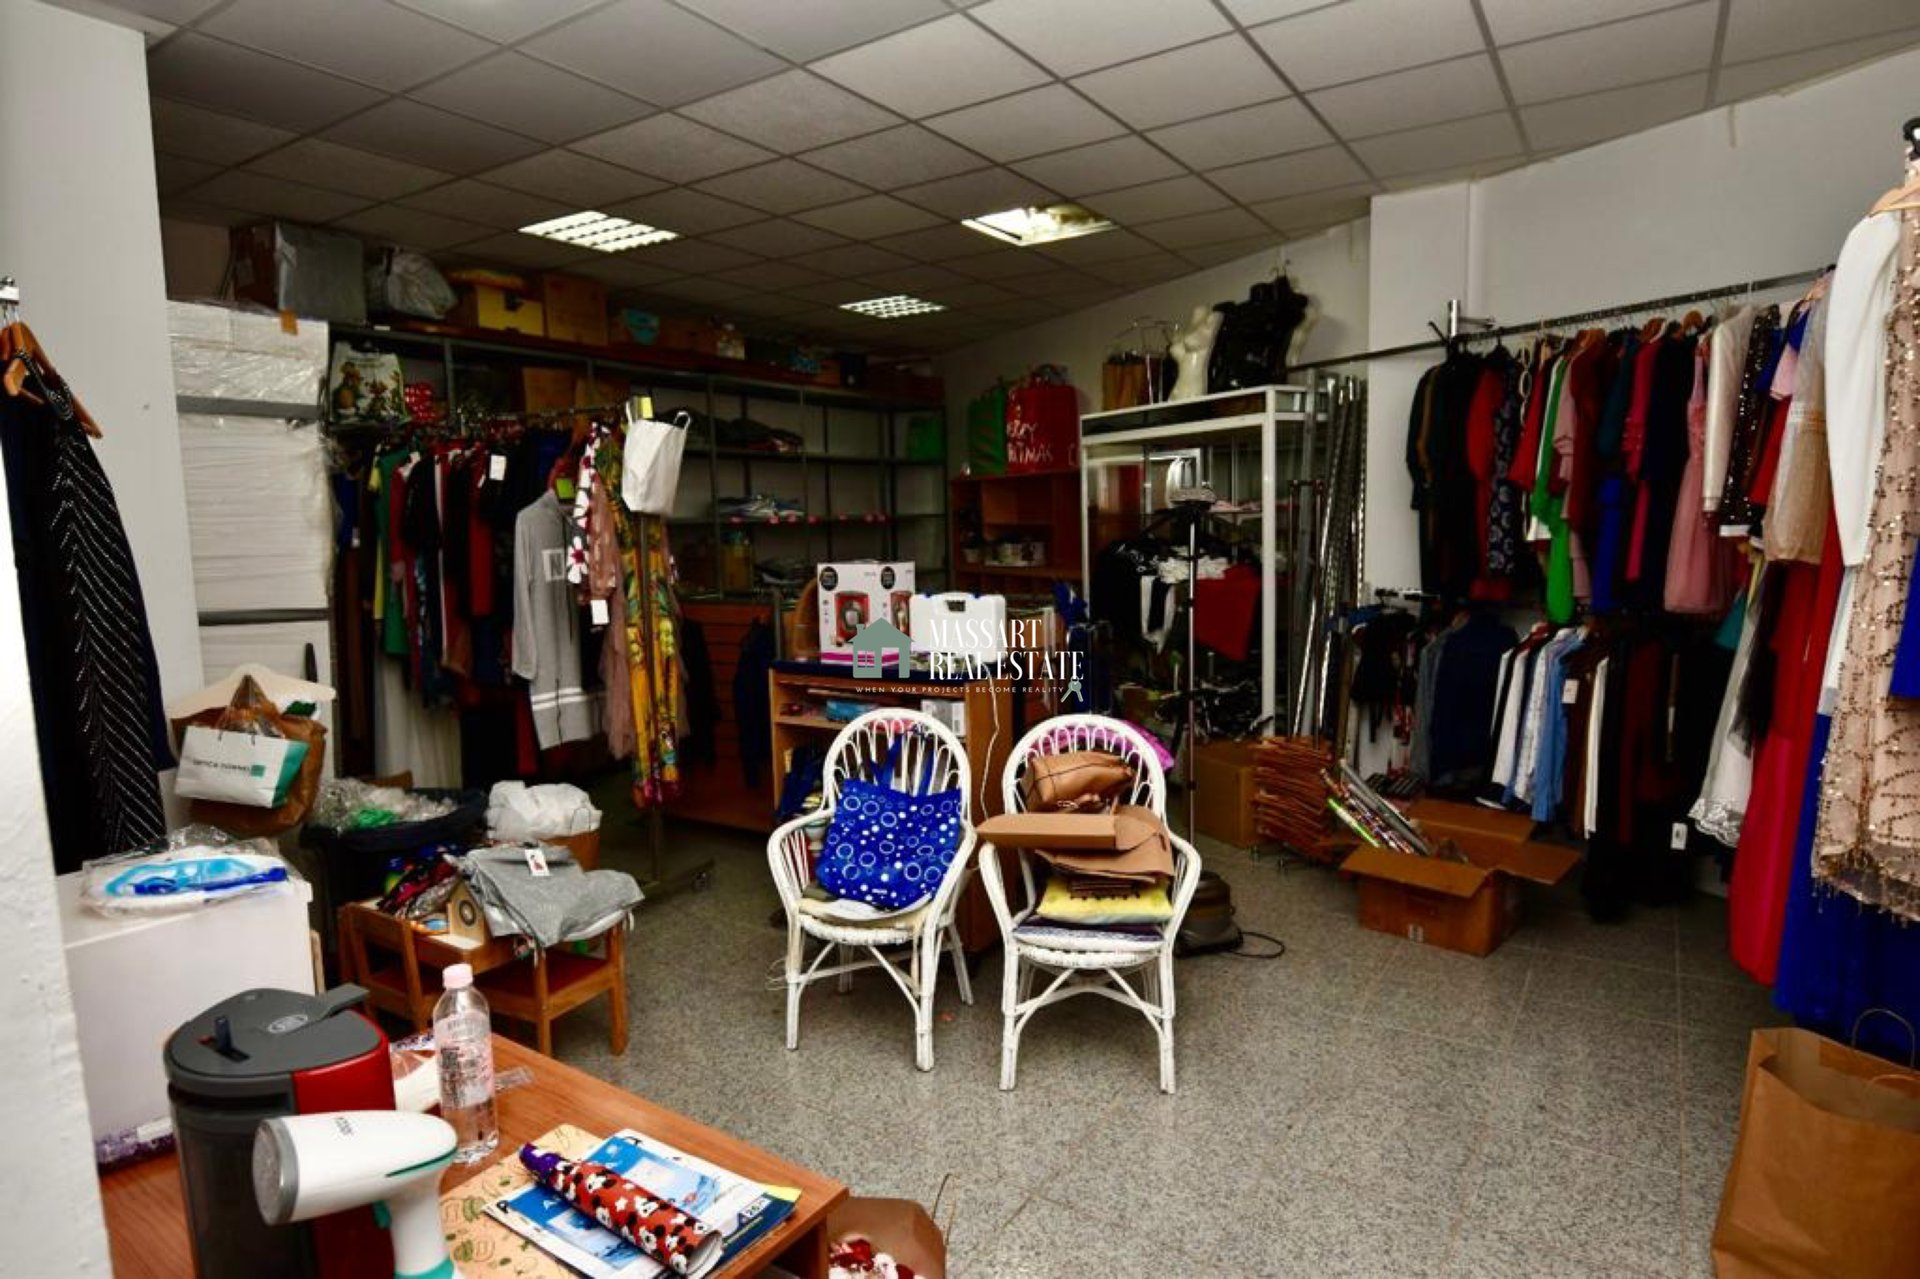 Commercial premises currently used as a fashion store, located in a central and commercial area of Adeje.